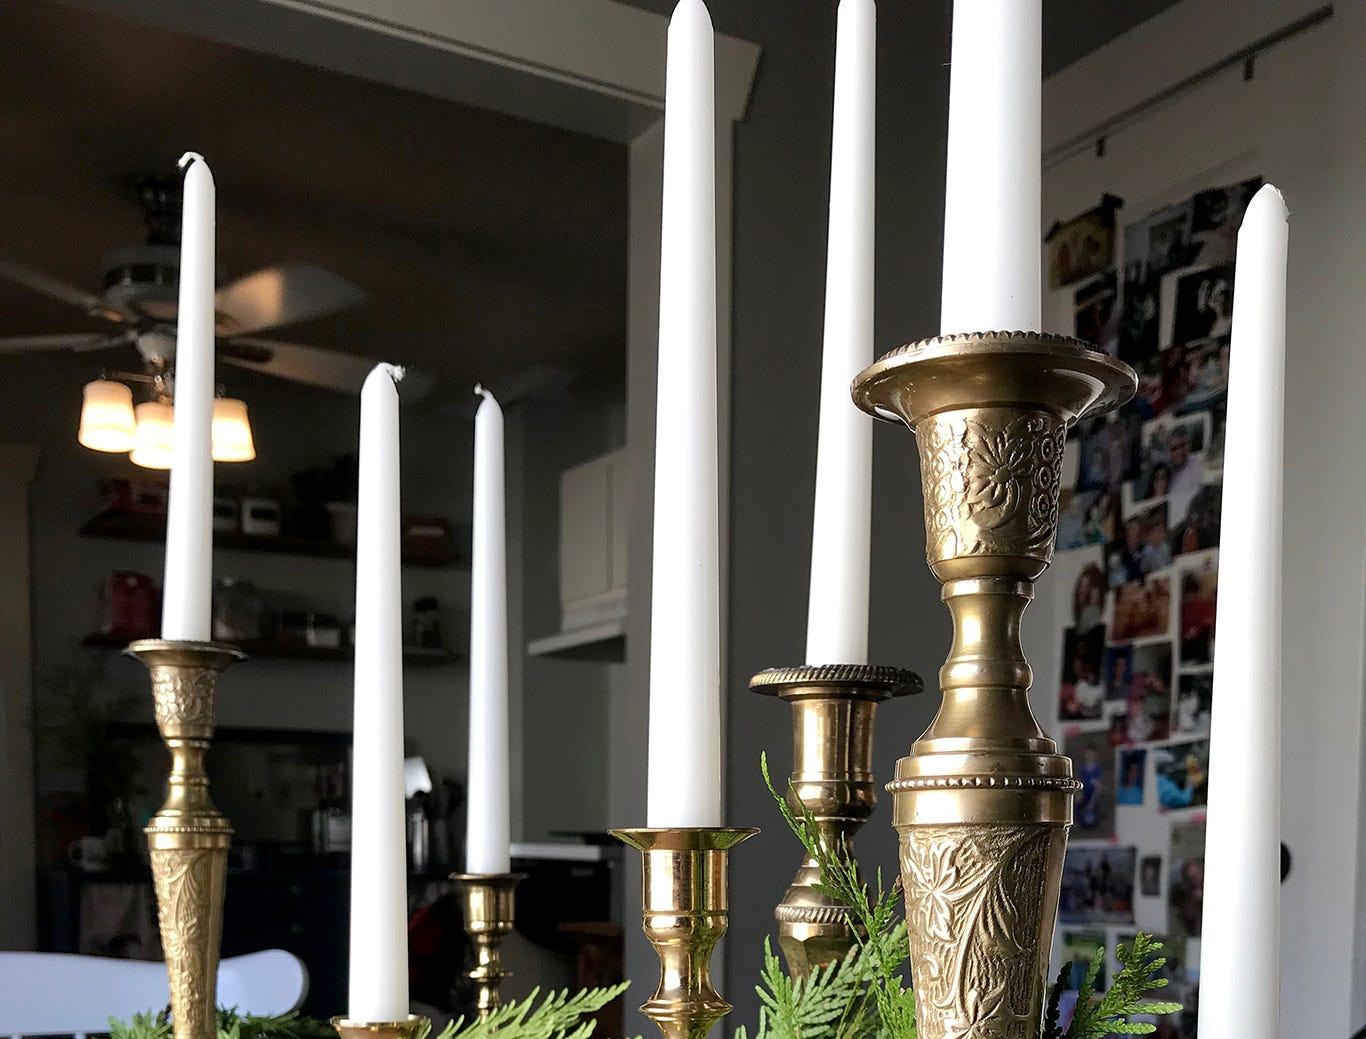 Garland spread among brass candlesticks makes for an easy dining room centerpiece.